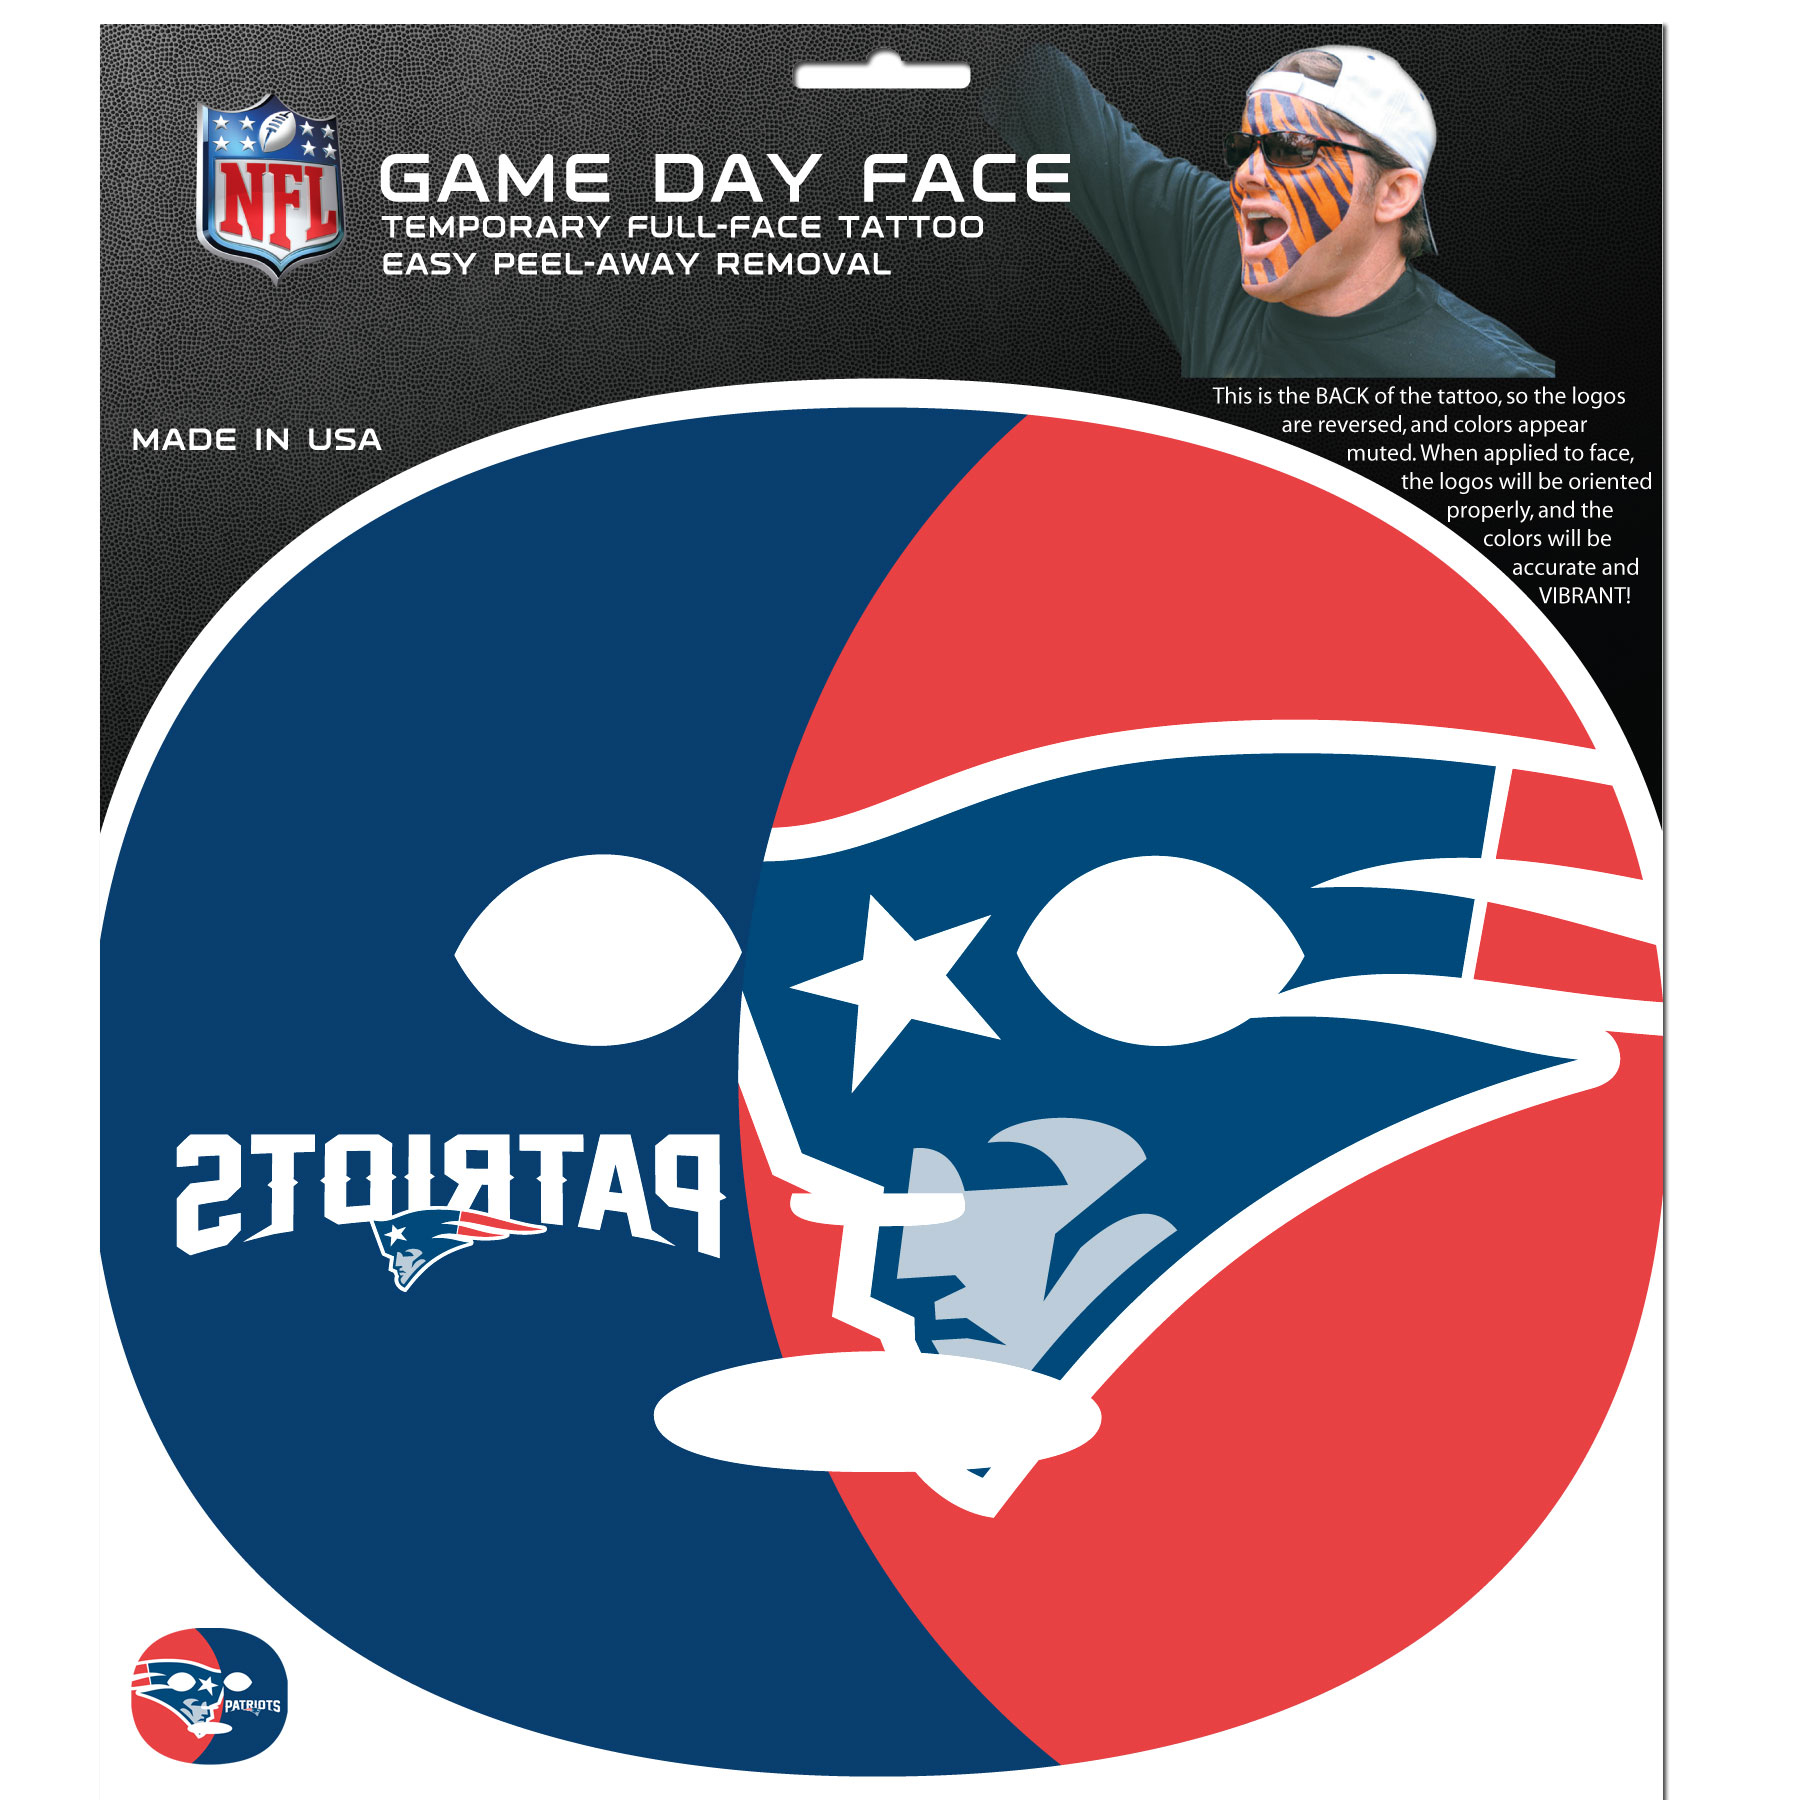 New England Patriots Game Face Temporary Tattoo - No better way to show your New England Patriots pride than by painting your face. Siskiyou's Game Day Face Temporary Tattoo isn't your typical face paint. It is a water based application that doesn't smudge, smear or sweat off  while you're wearing it and easily peels off after you're done celebrating your team's big Win! The temporary tattoo is large enough to trim down to fit your face.  Our Game Day Face Temporary Tattoo's are fun for fans of all ages. You may have seen our product before,  these are the same Temporary Face Tattoos as pitched on ABC's Shark Tank.